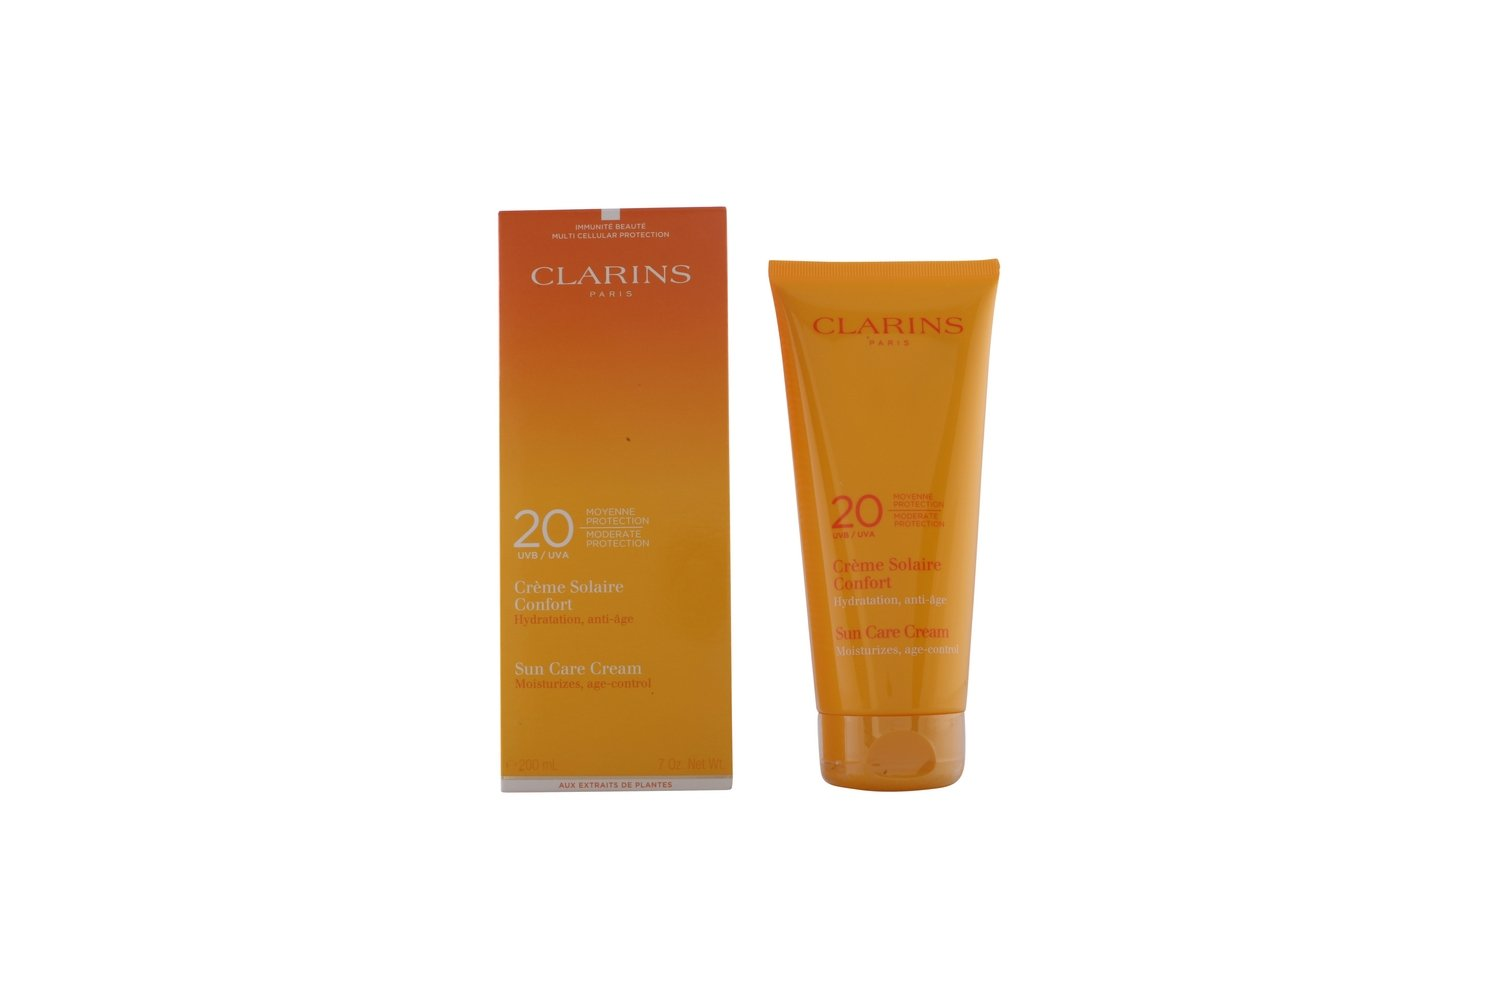 Claire Sun Care Cream Moderate Protection UVB/UVA 20, 200 ml